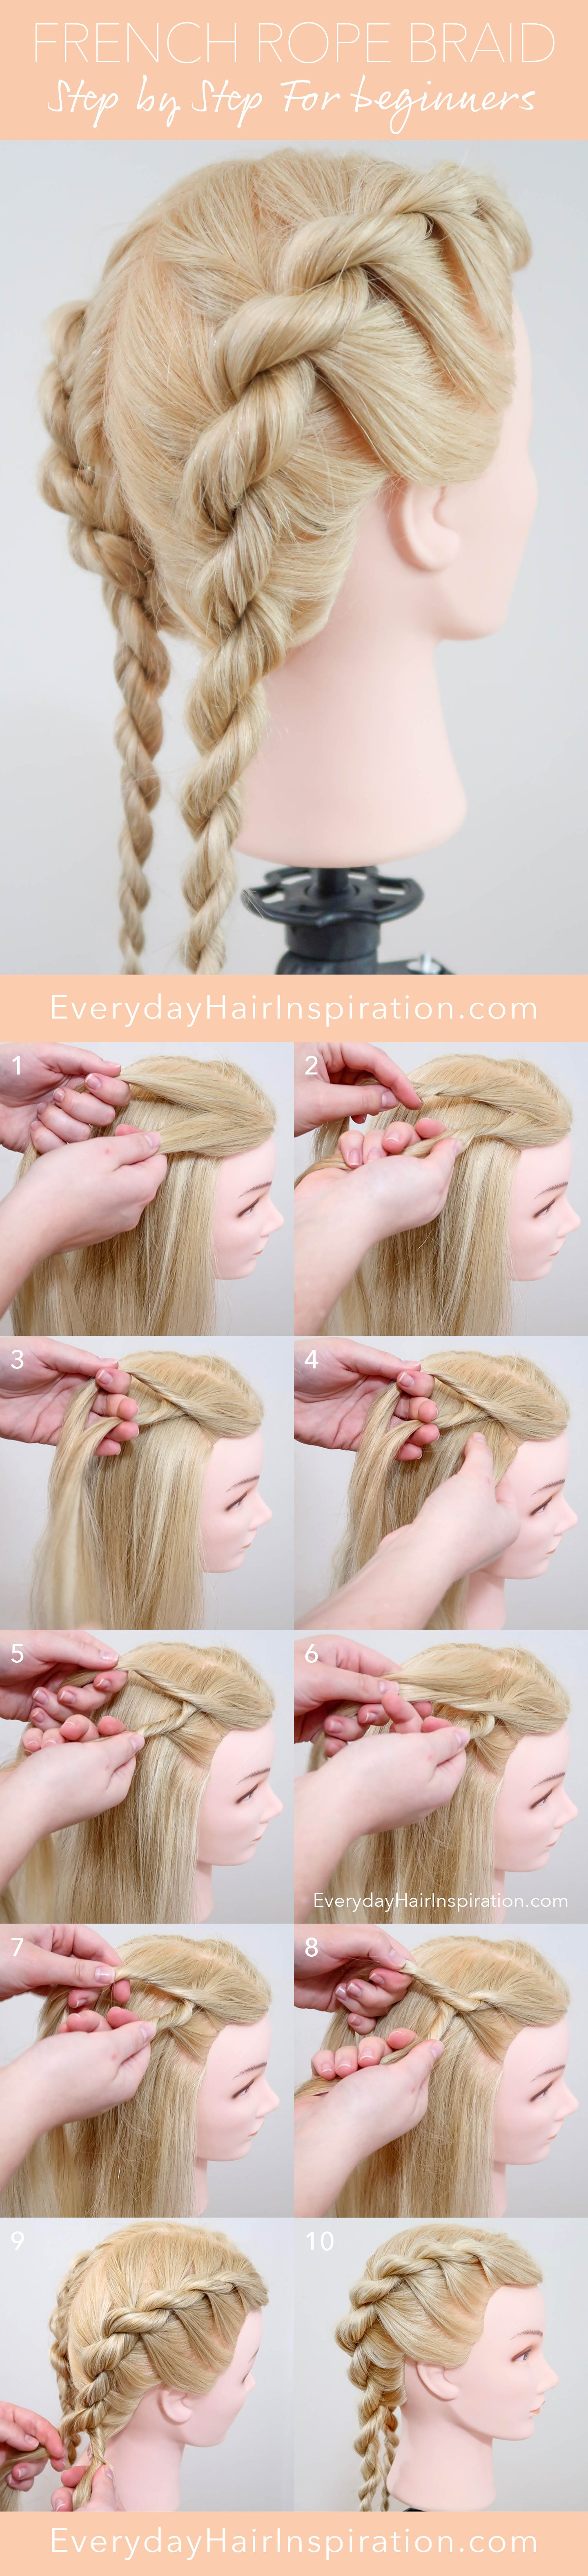 French Rope Braid Step By Step Everyday Hair Inspiration